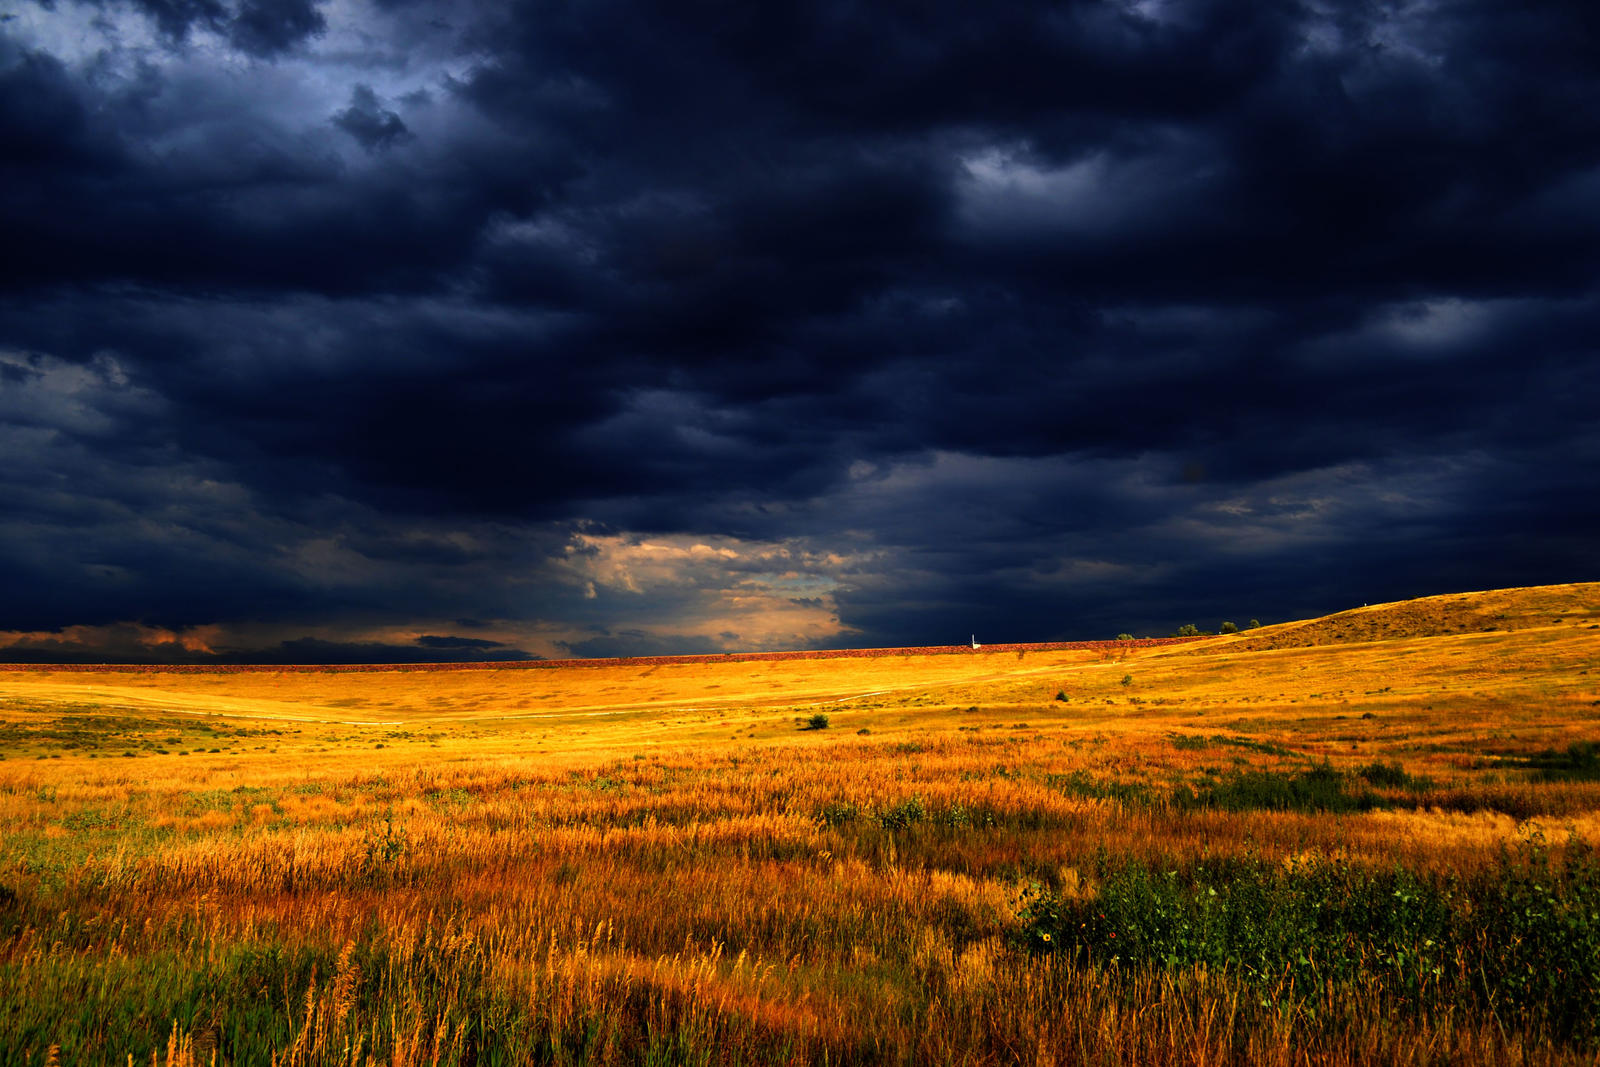 Dancing Above the Prairie by Delta406